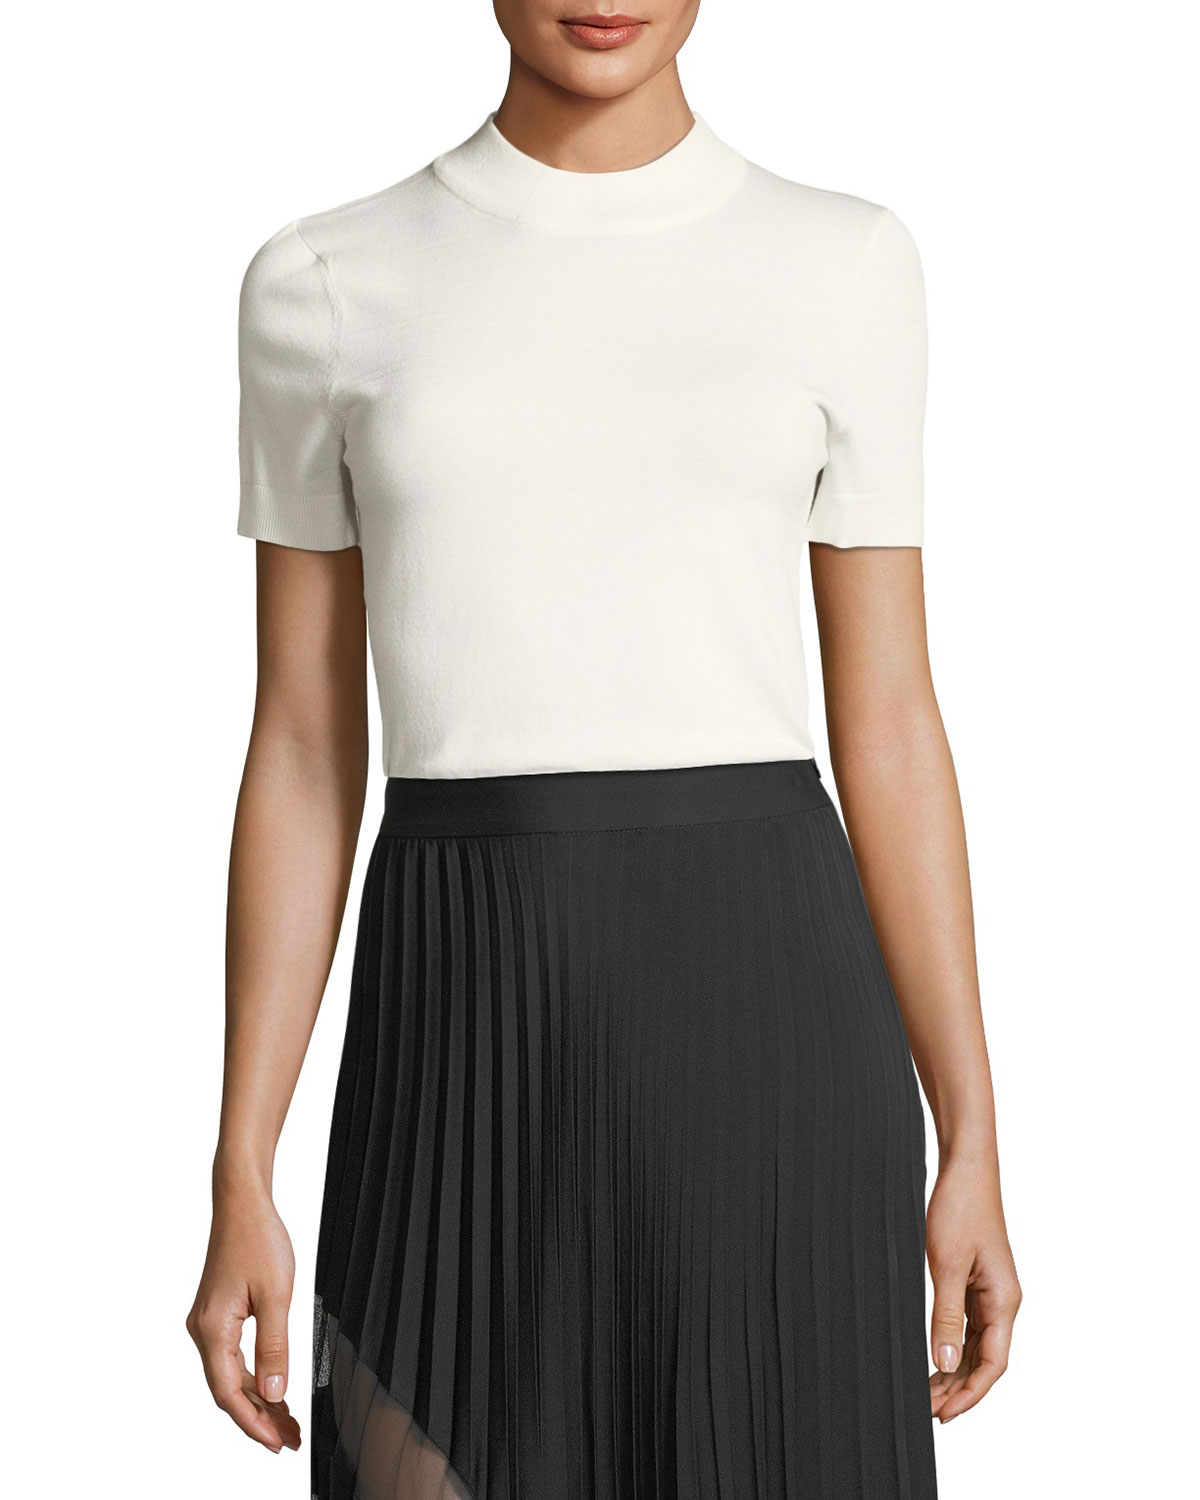 MILLY Womens Mod Neck Top